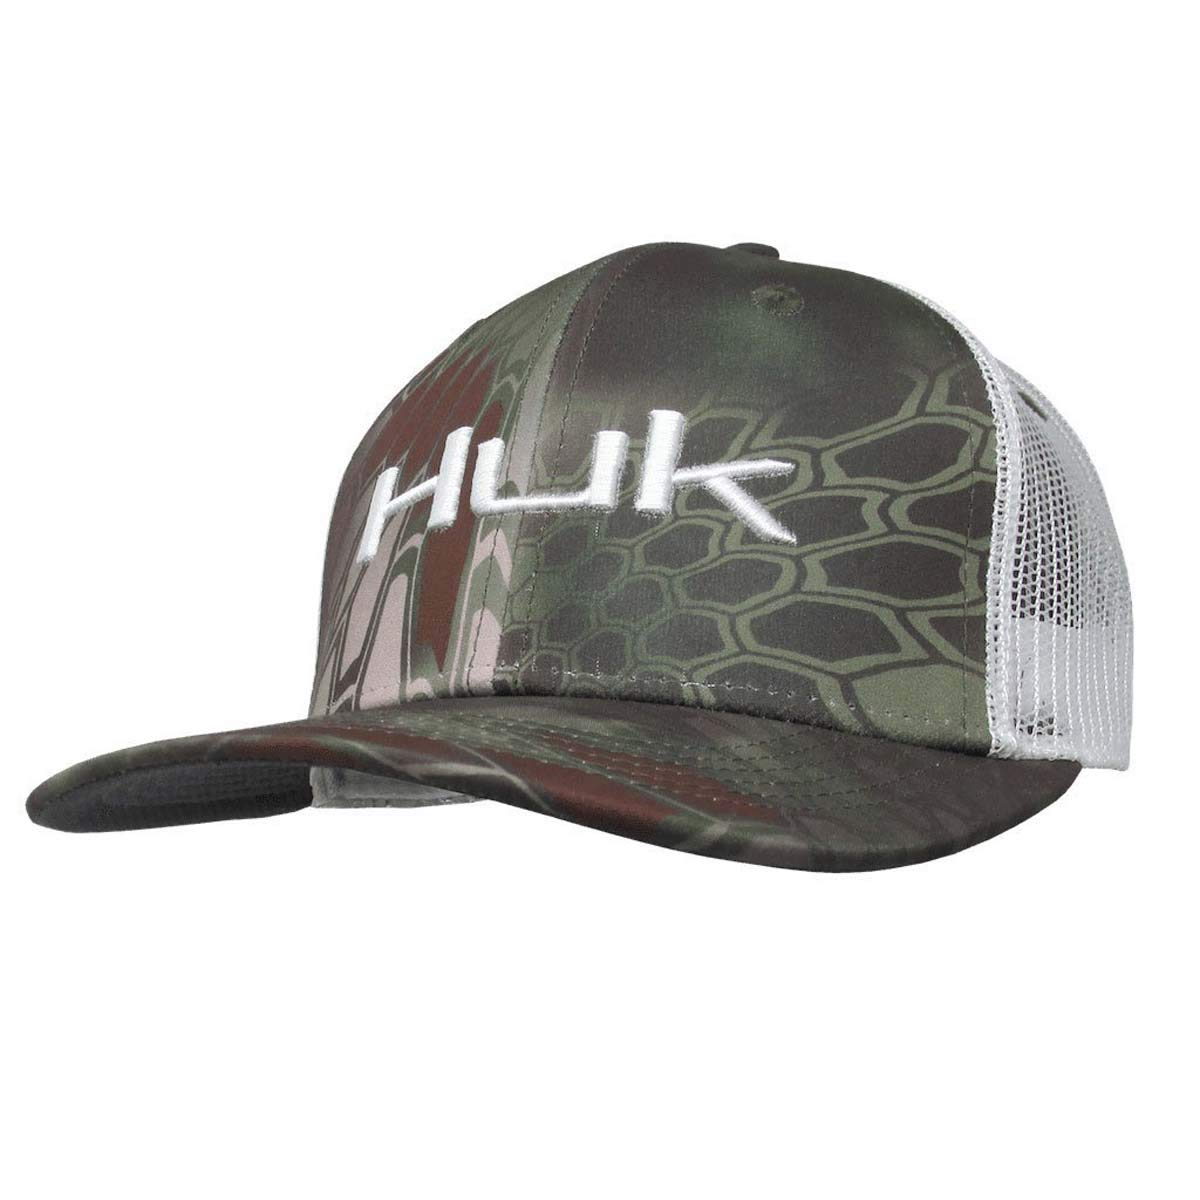 6185813d Amazon.com: Huk Kryptek Logo Trucker Cap: Sports & Outdoors